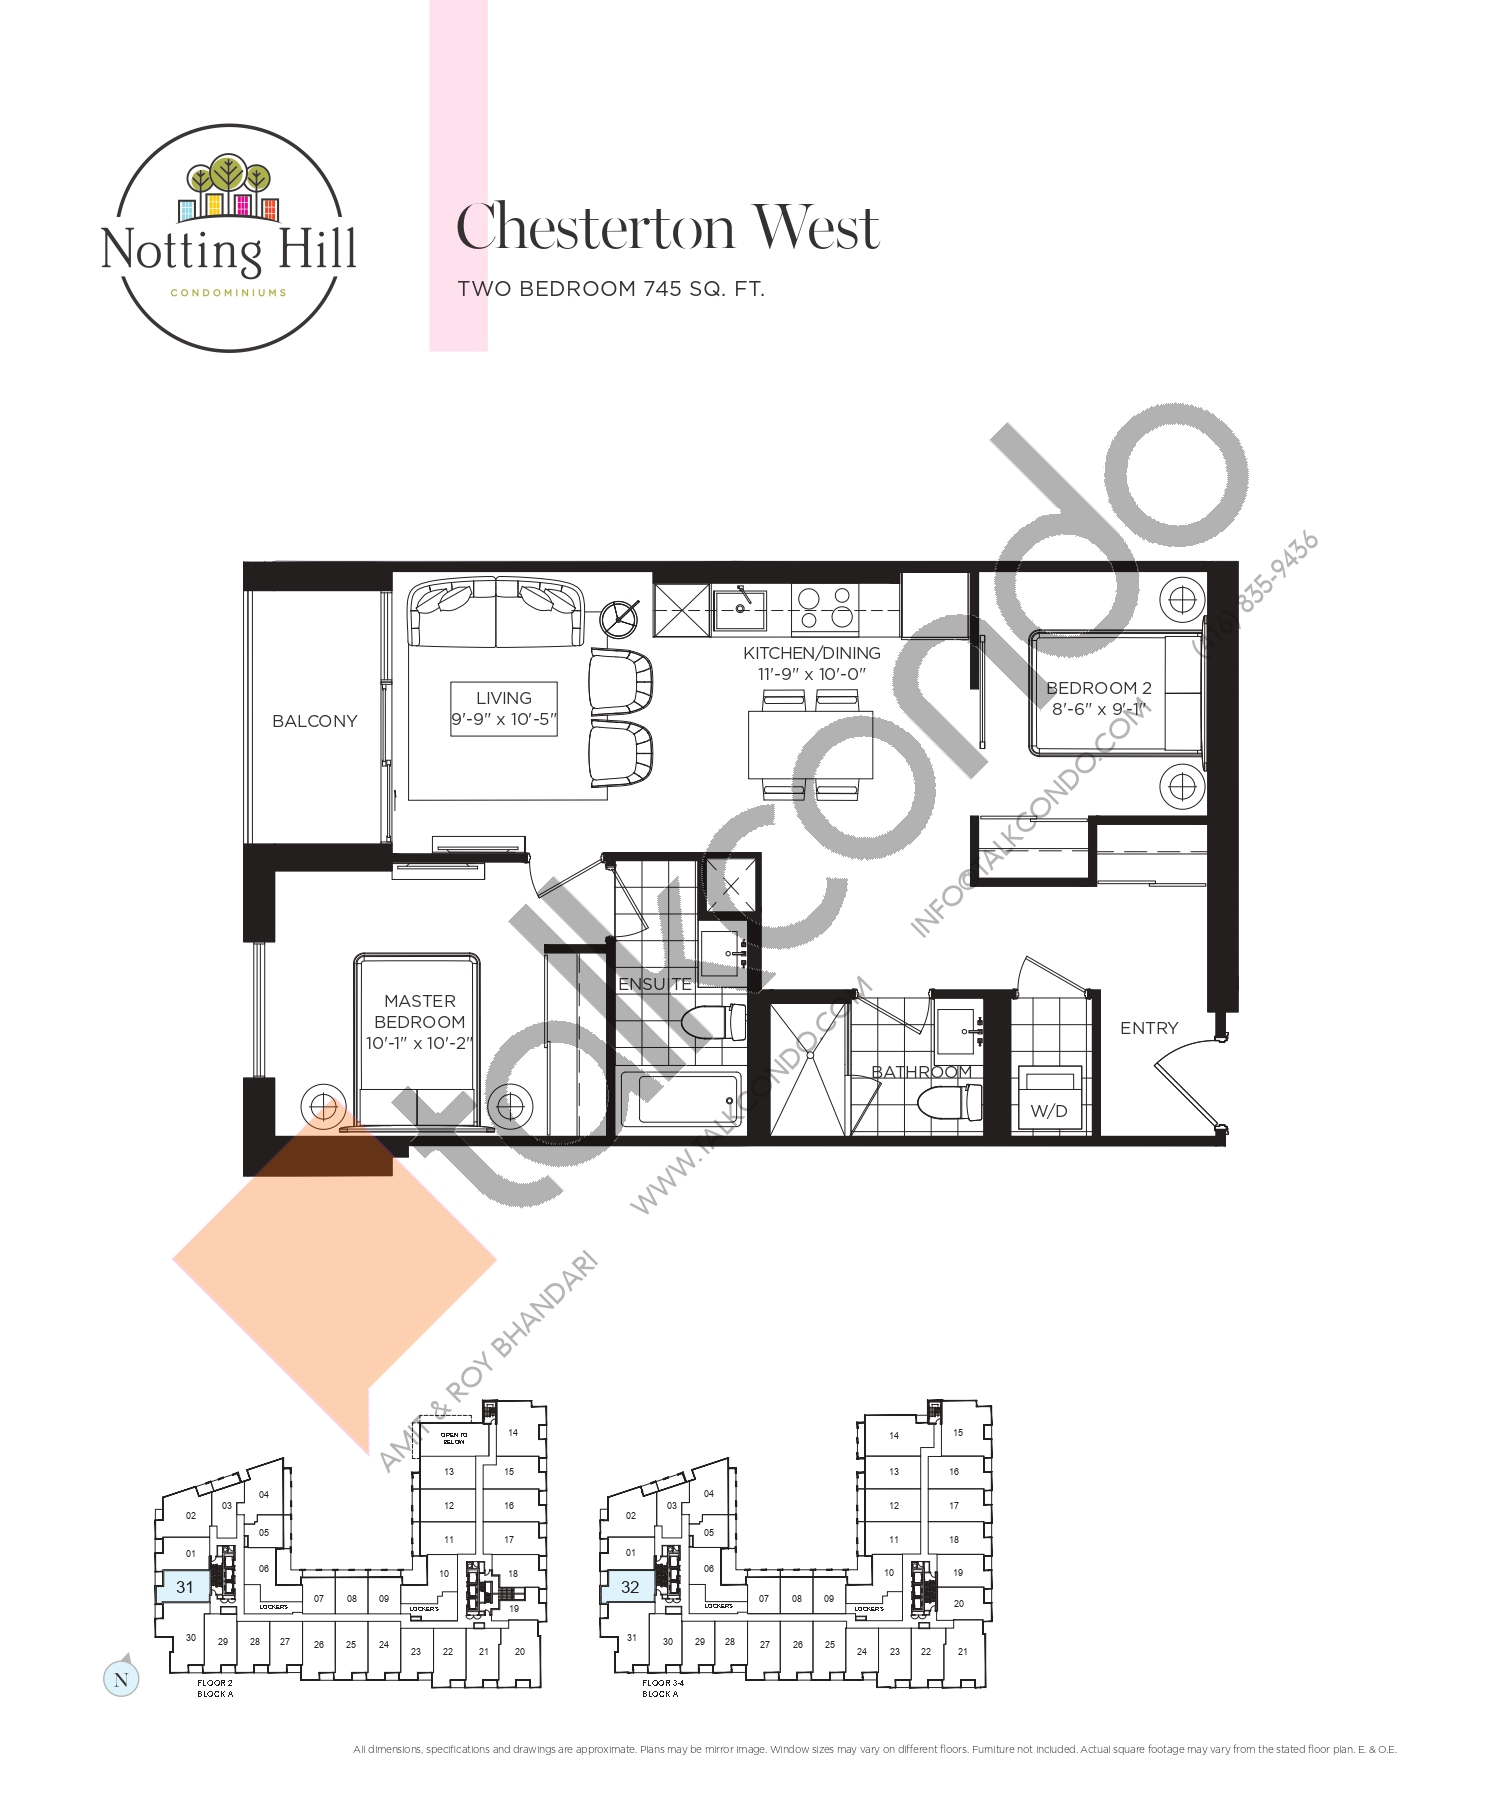 Chesterton West Floor Plan at Notting Hill Phase 2 Condos - 745 sq.ft